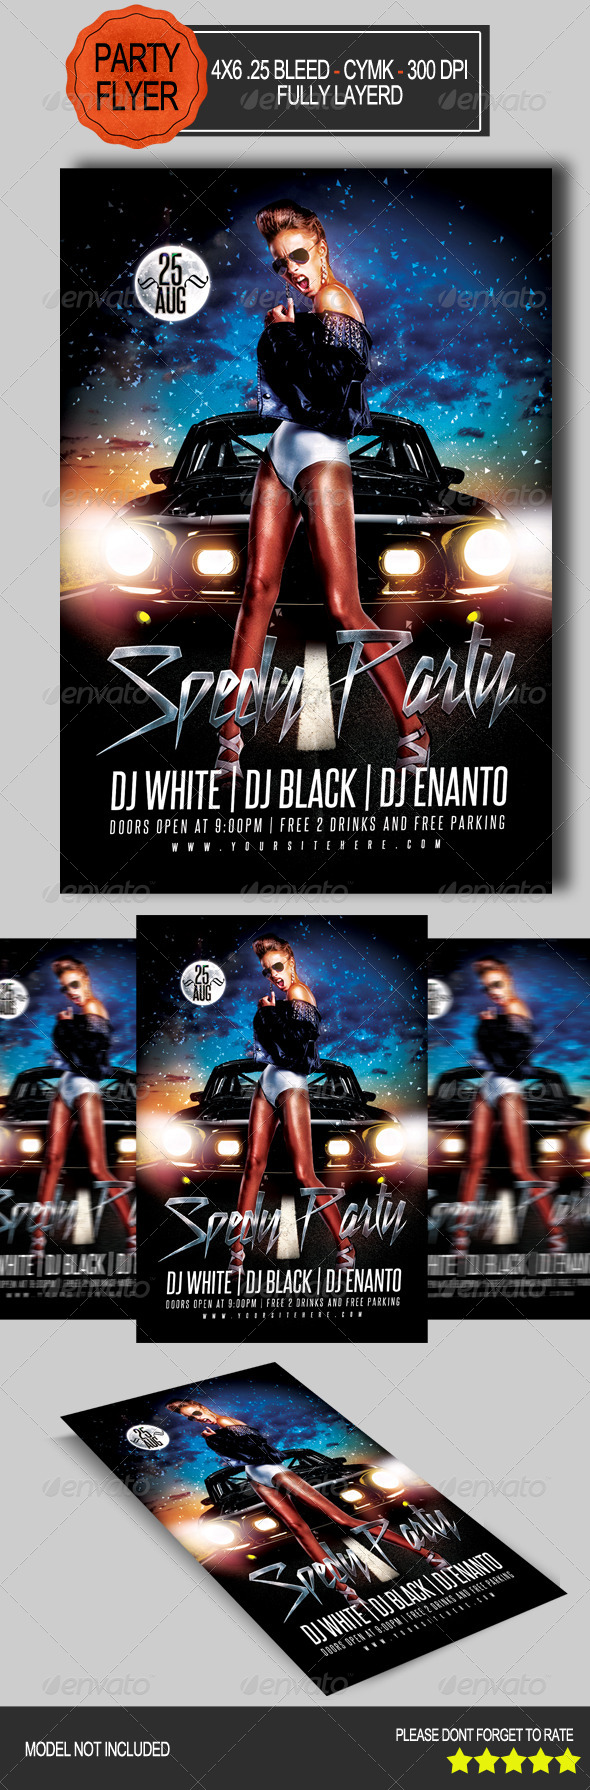 GraphicRiver Speddy Party Flyer 7843324